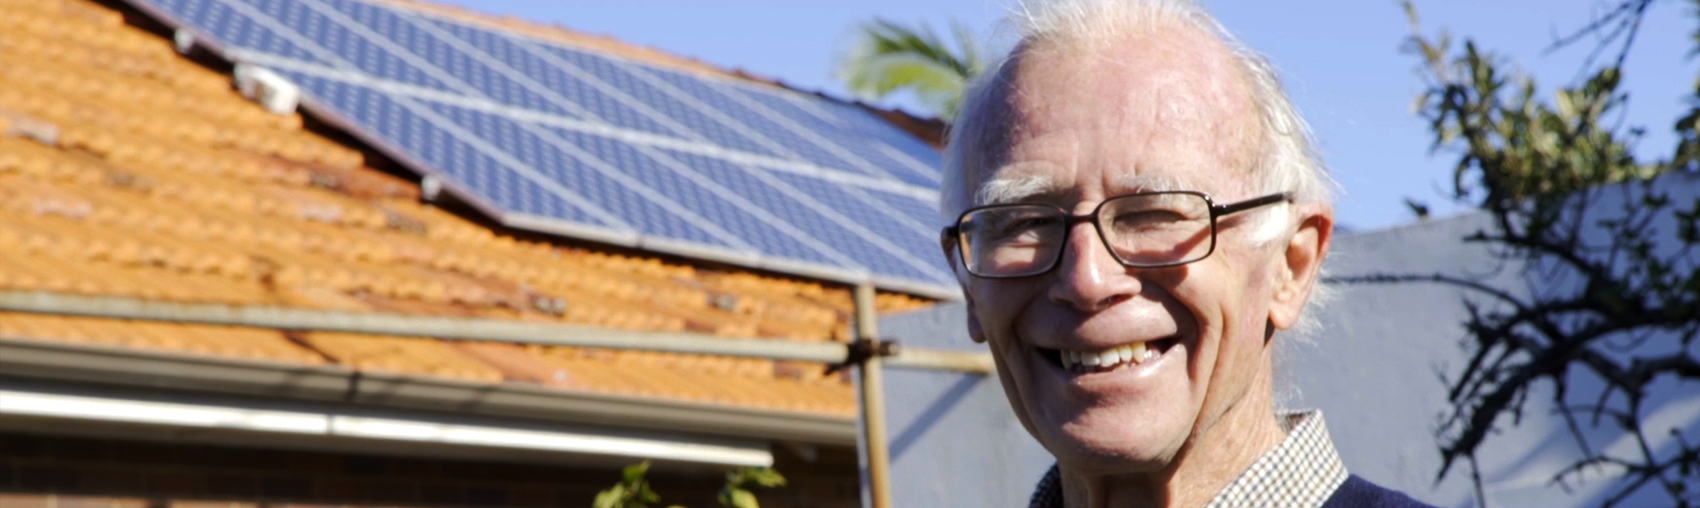 Want a fair price for the solar power you feed back to the grid? Sign the petition!